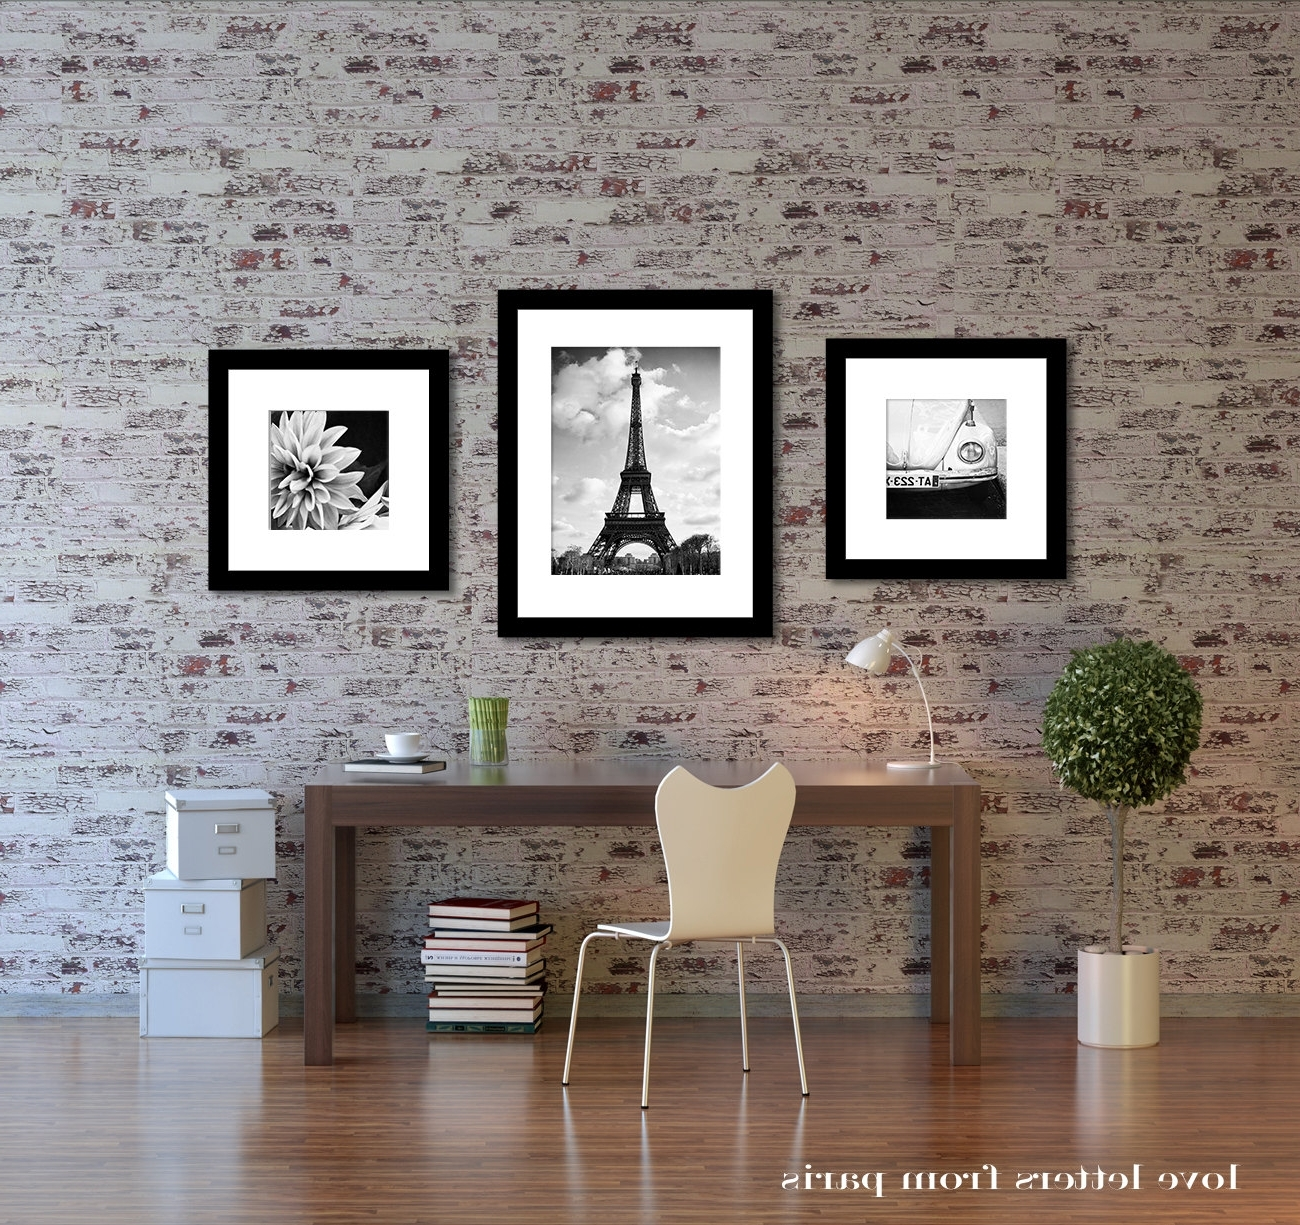 Home Decor Wall Art Contemporary – Home Decor Wall Art Can Intended For Famous Paris Themed Wall Art (View 3 of 15)